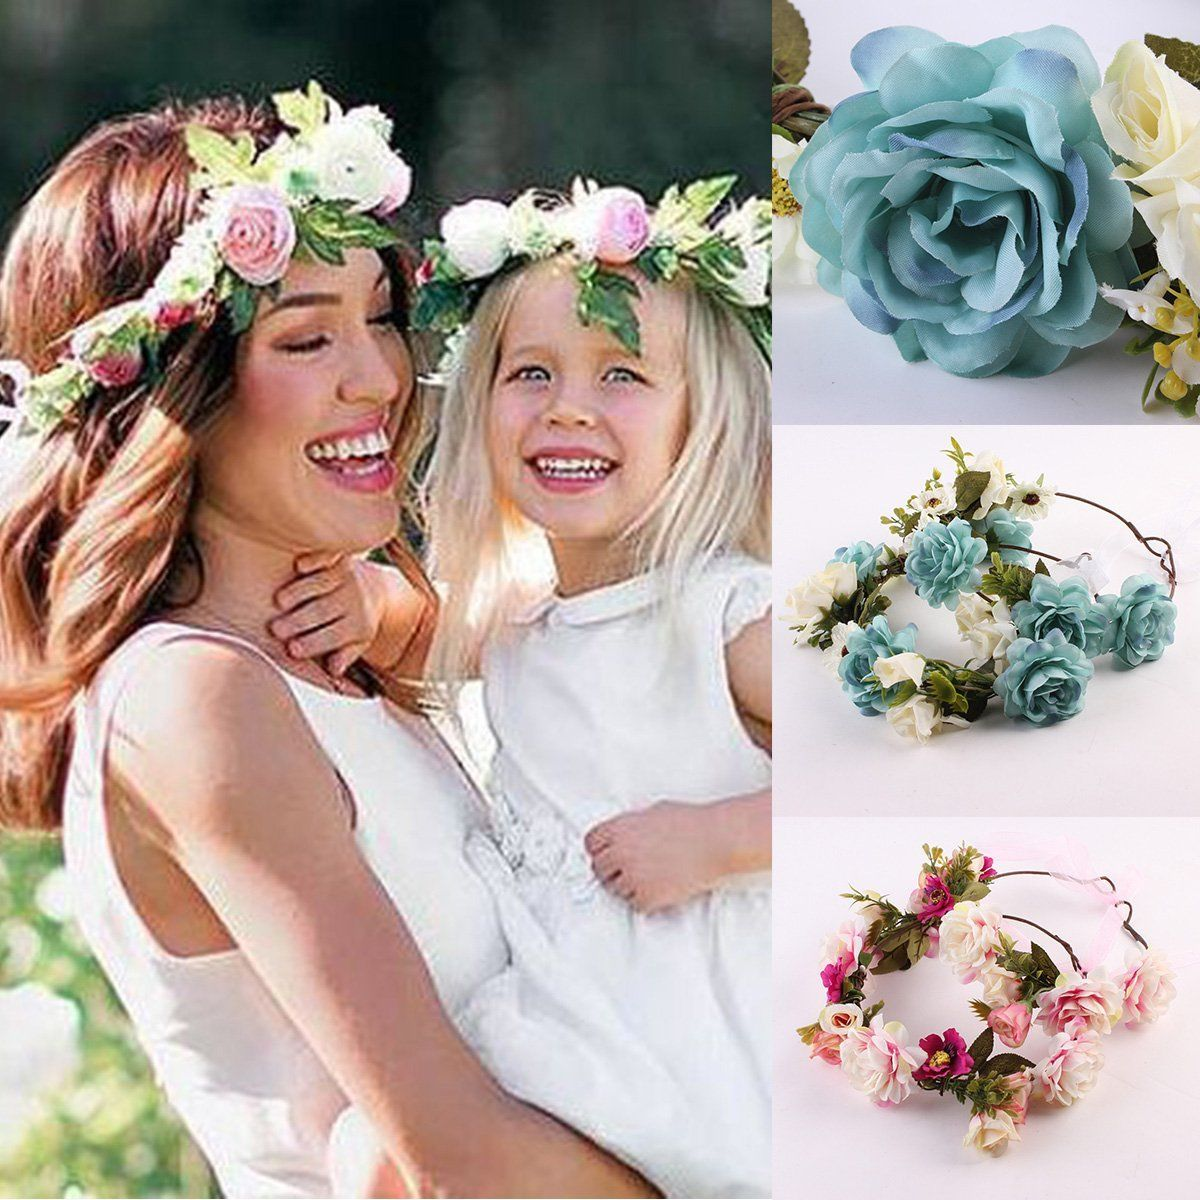 Hair Accessories Pretty Girls& Mother Hairband Wedding Flower Hair Garland Crown Headband Lovely Wreath 2 Colors Pink% Blue 19/17cm Princess Yet Not Vulgar Girls' Baby Clothing